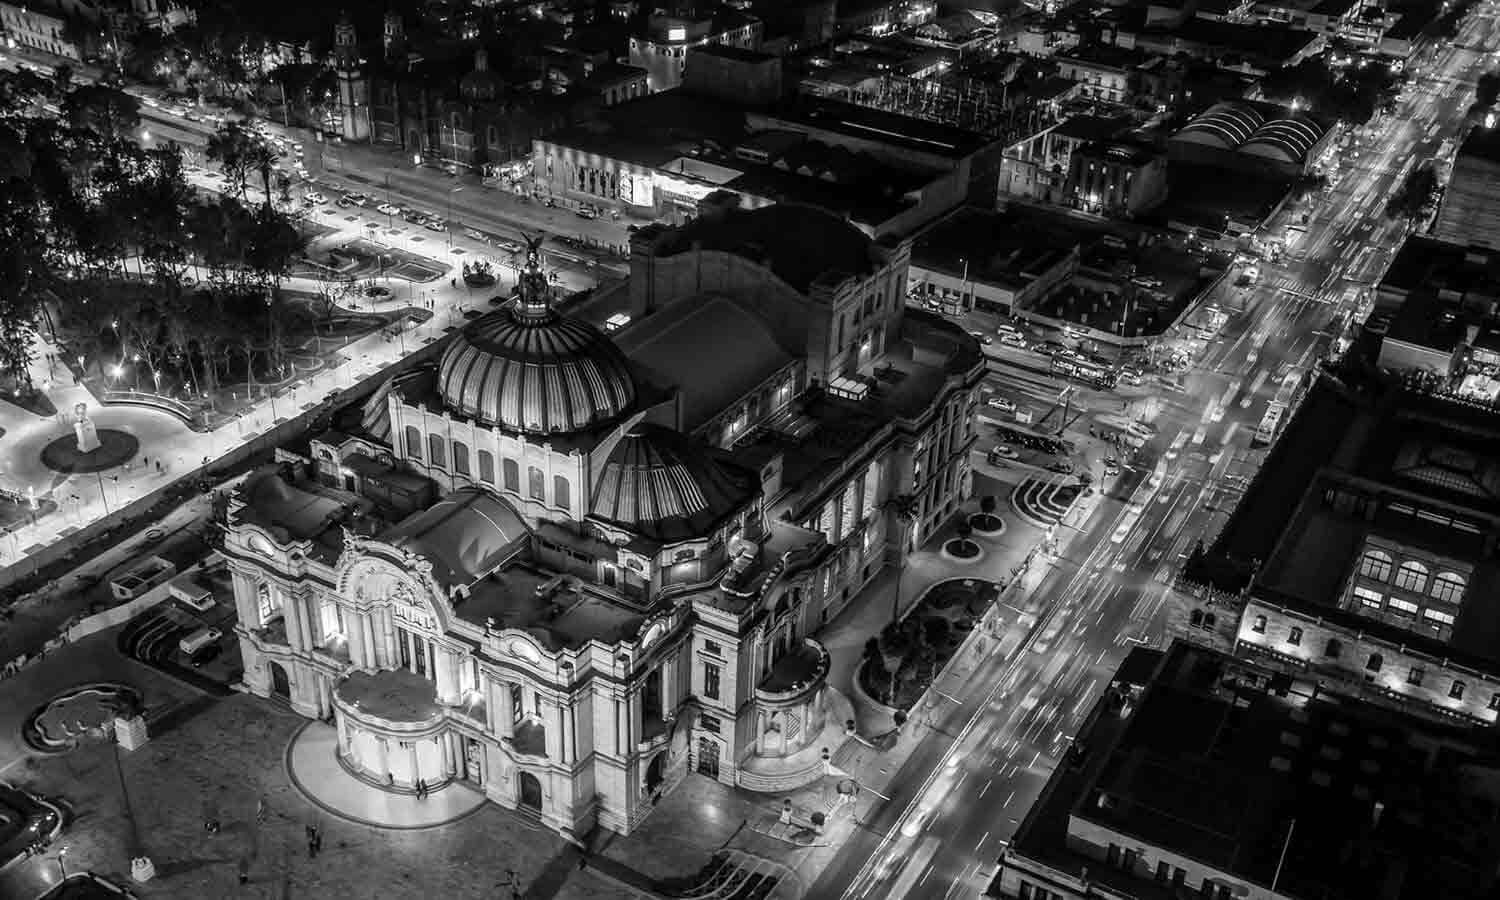 Palacio de Bellas Artes in Mexico